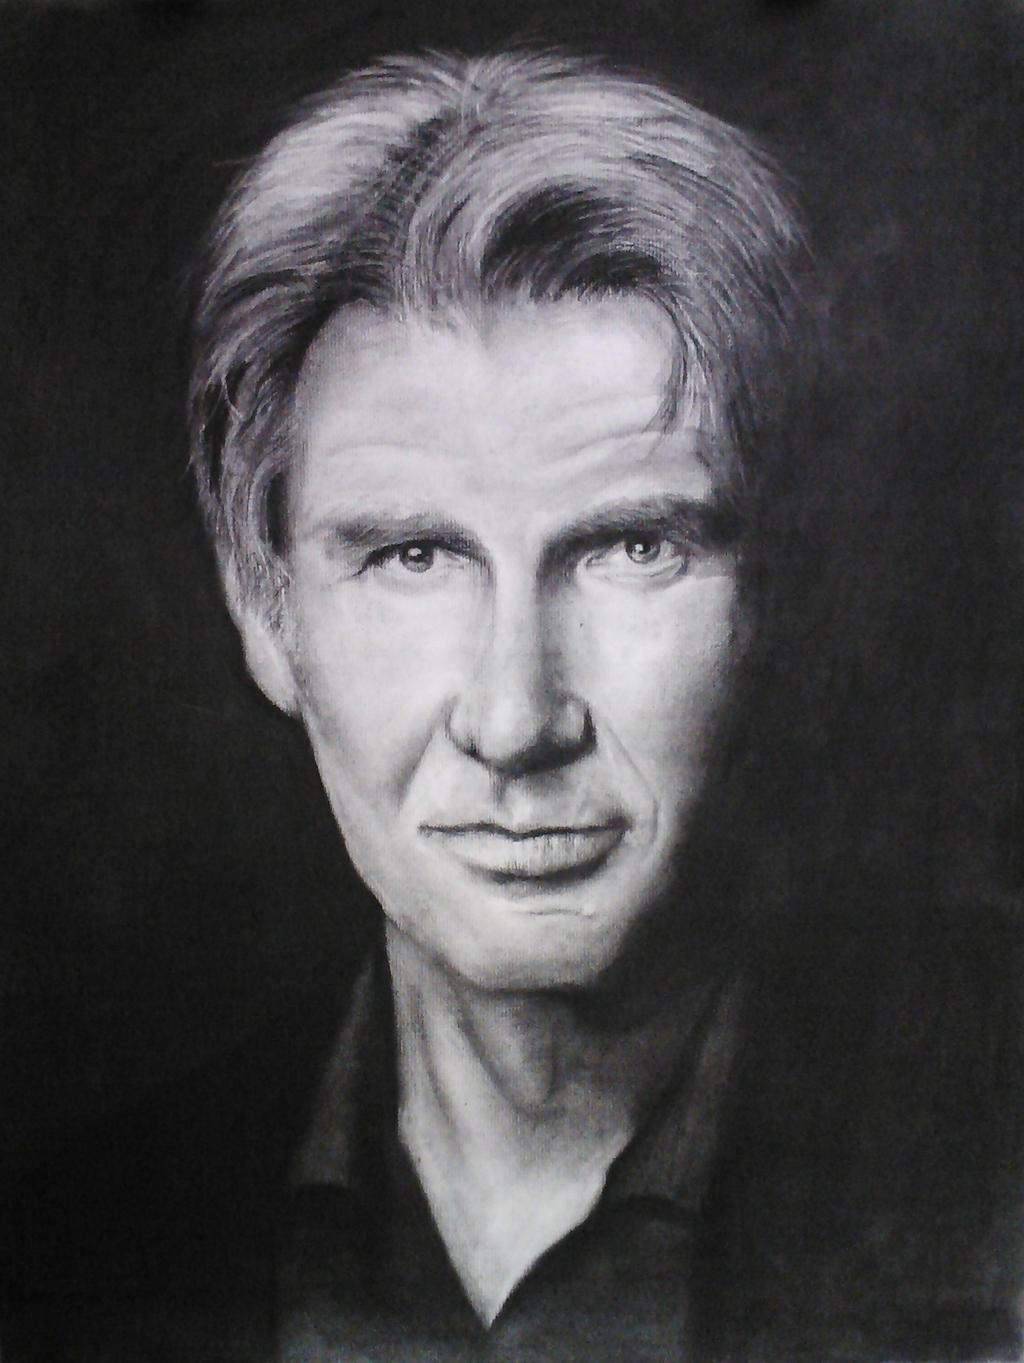 Harrison Ford (analysis of form) by JediBandicoot